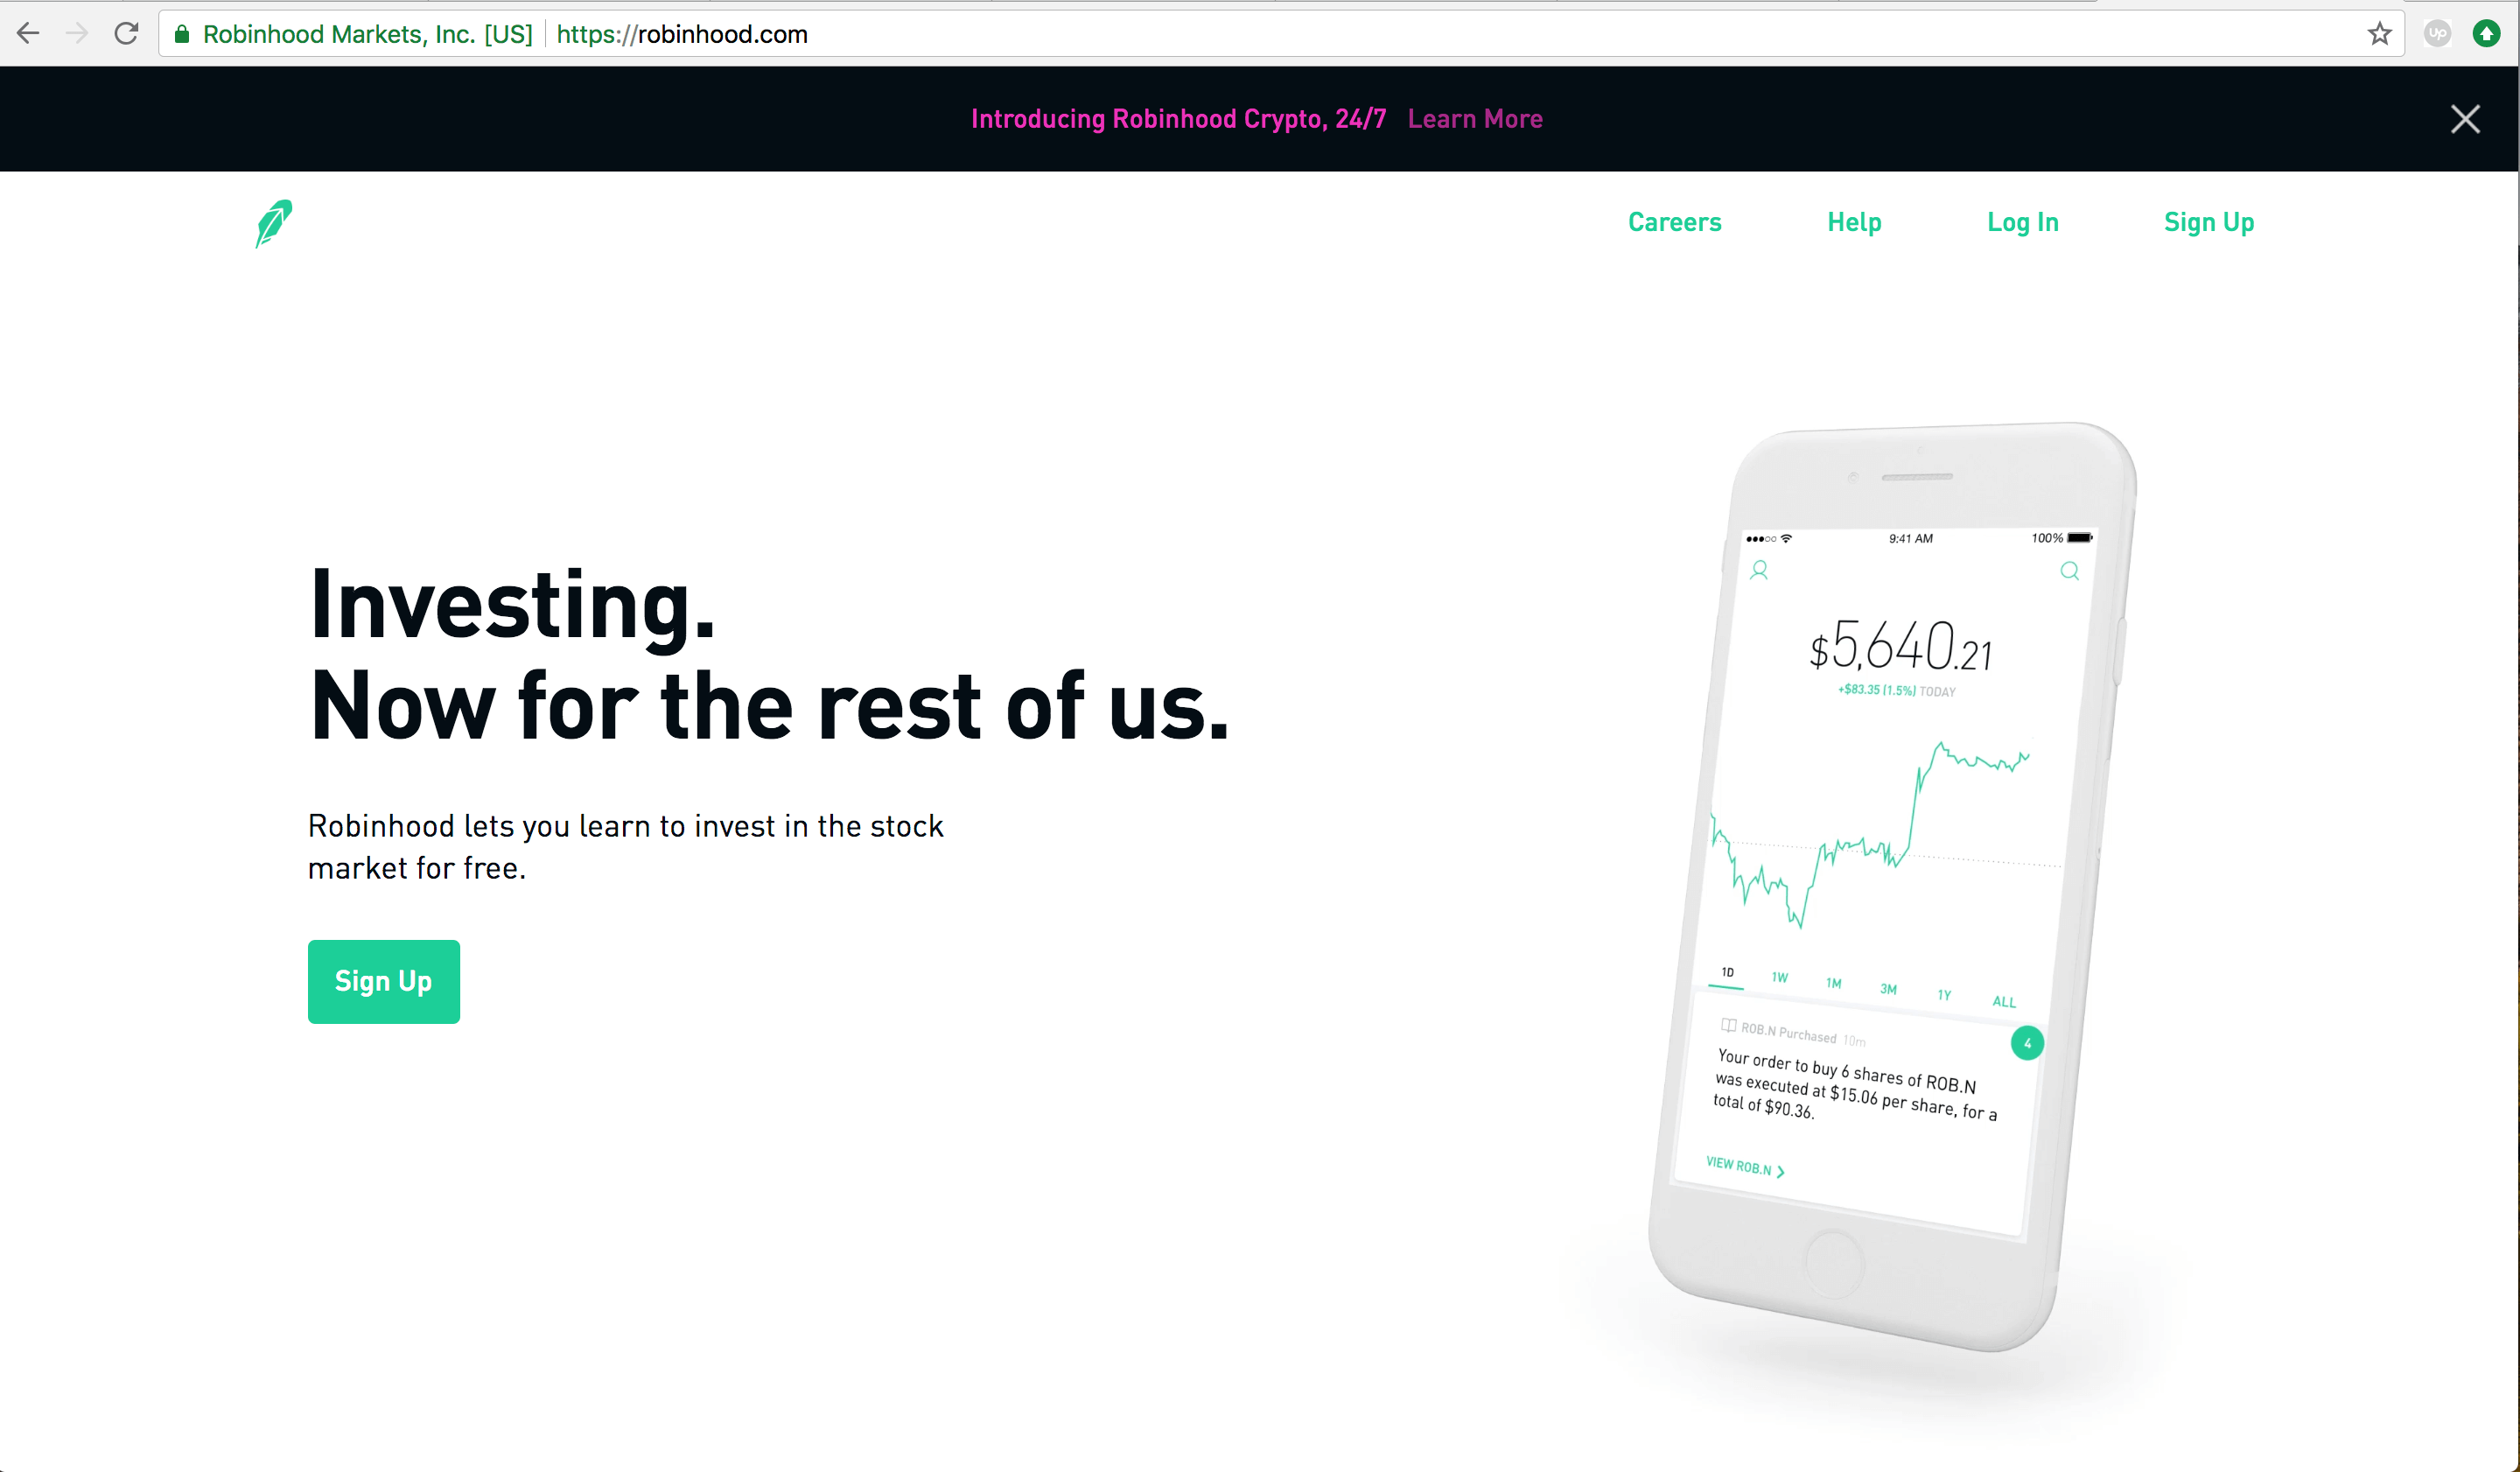 50 Percent Off Online Voucher Code Robinhood July 2020